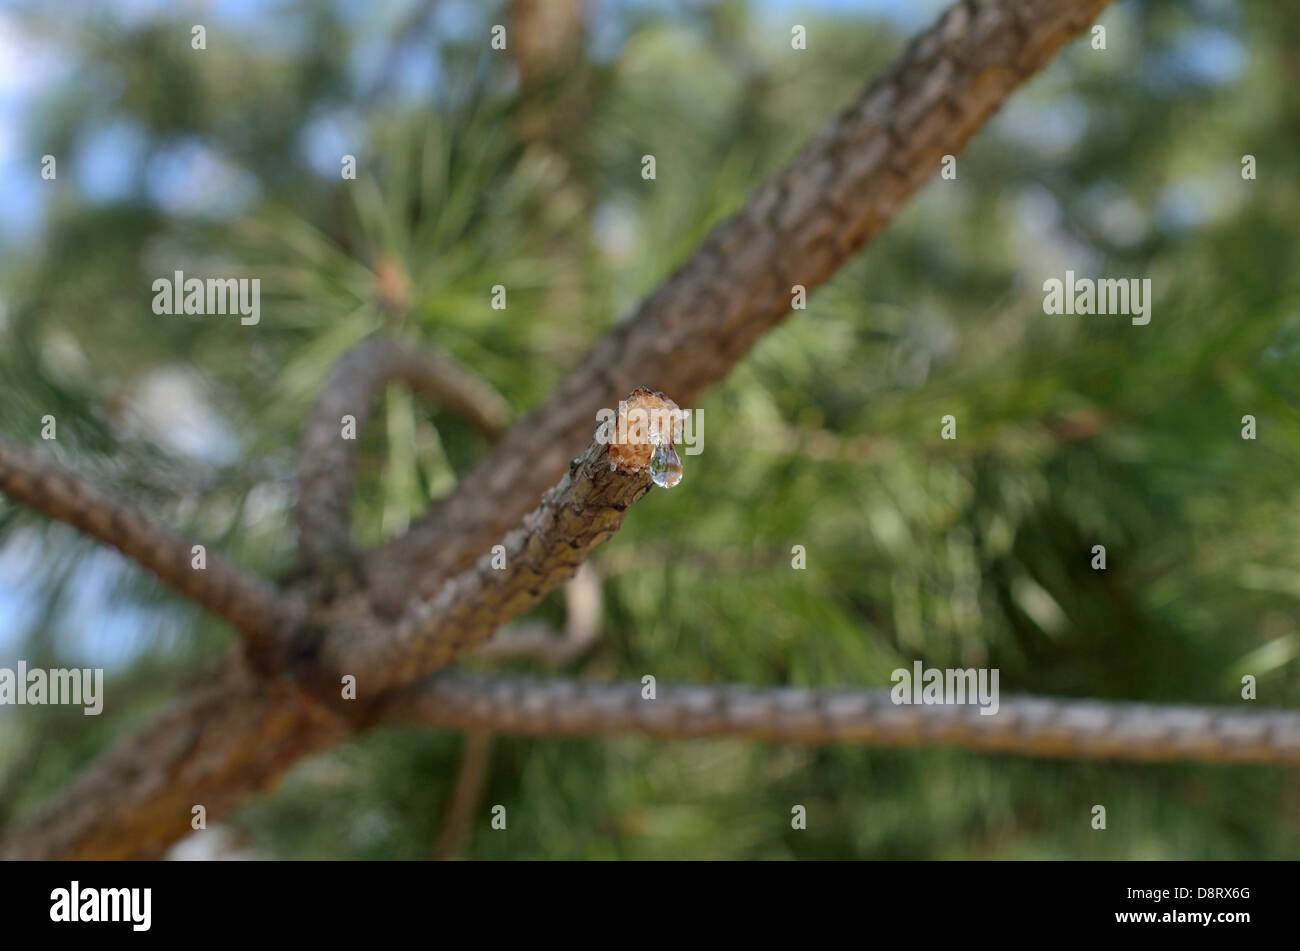 twig with a modicum of of glue on background of trees - Stock Image